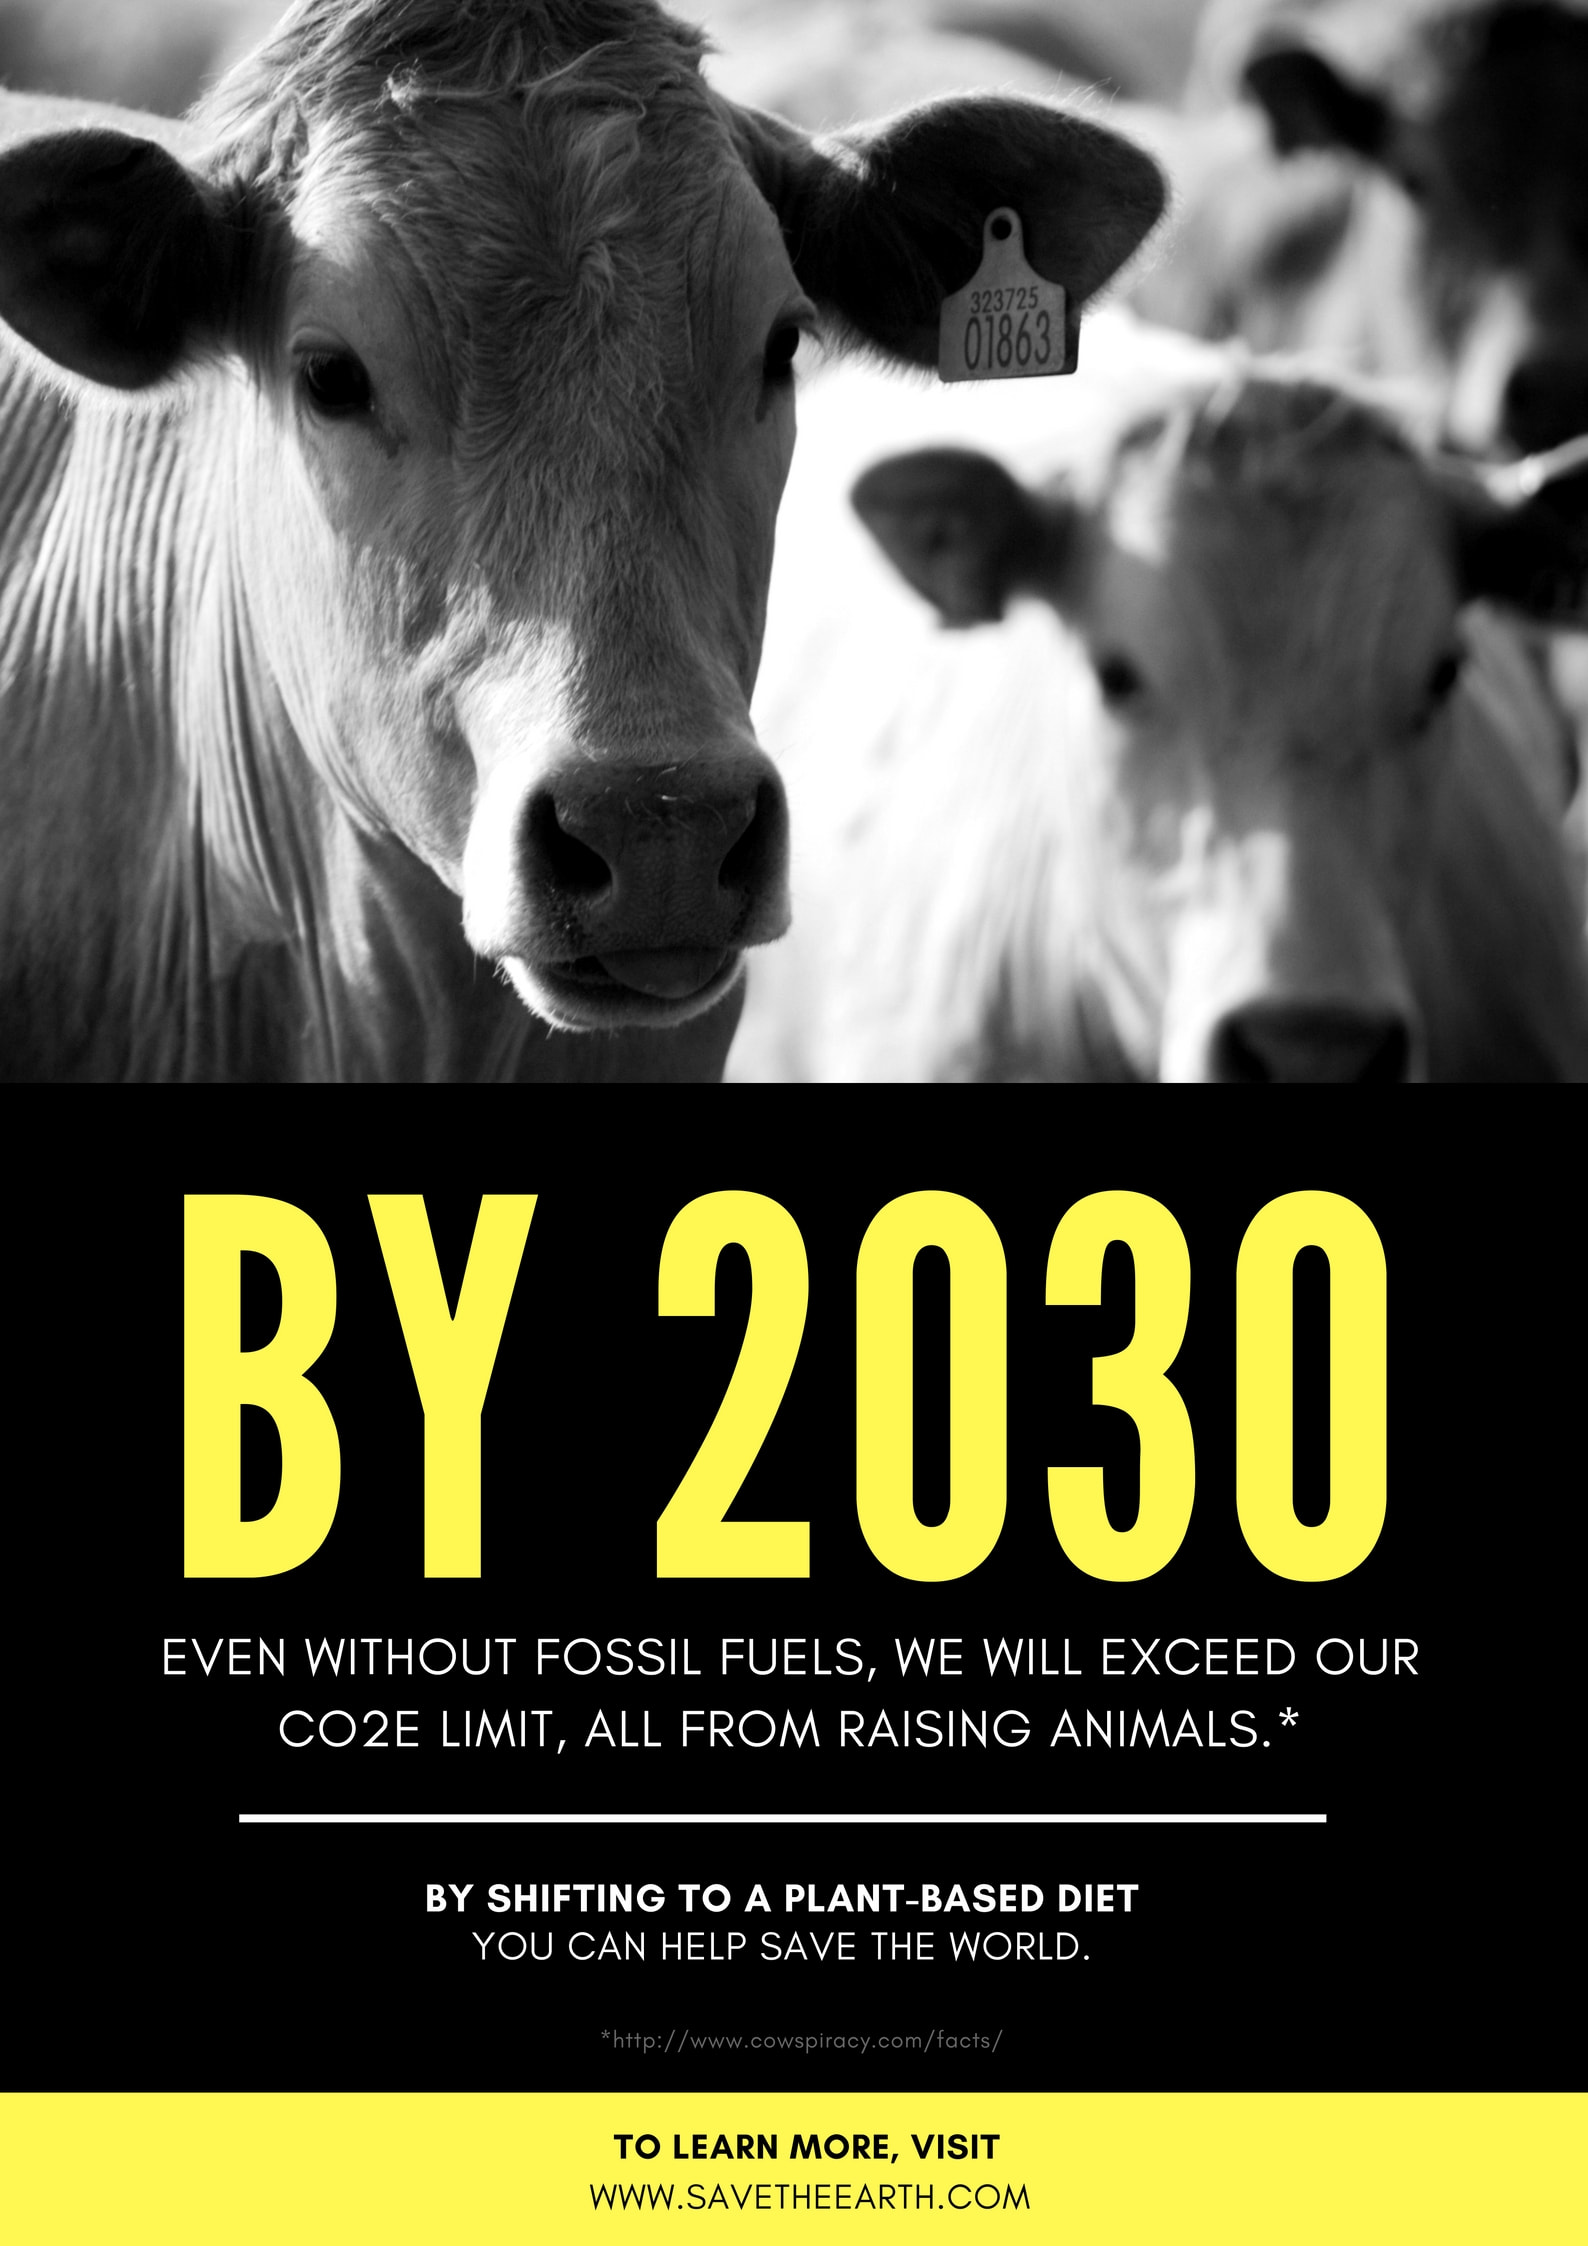 Yellow and Black Global Warming Animal Agriculture Awareness Poster